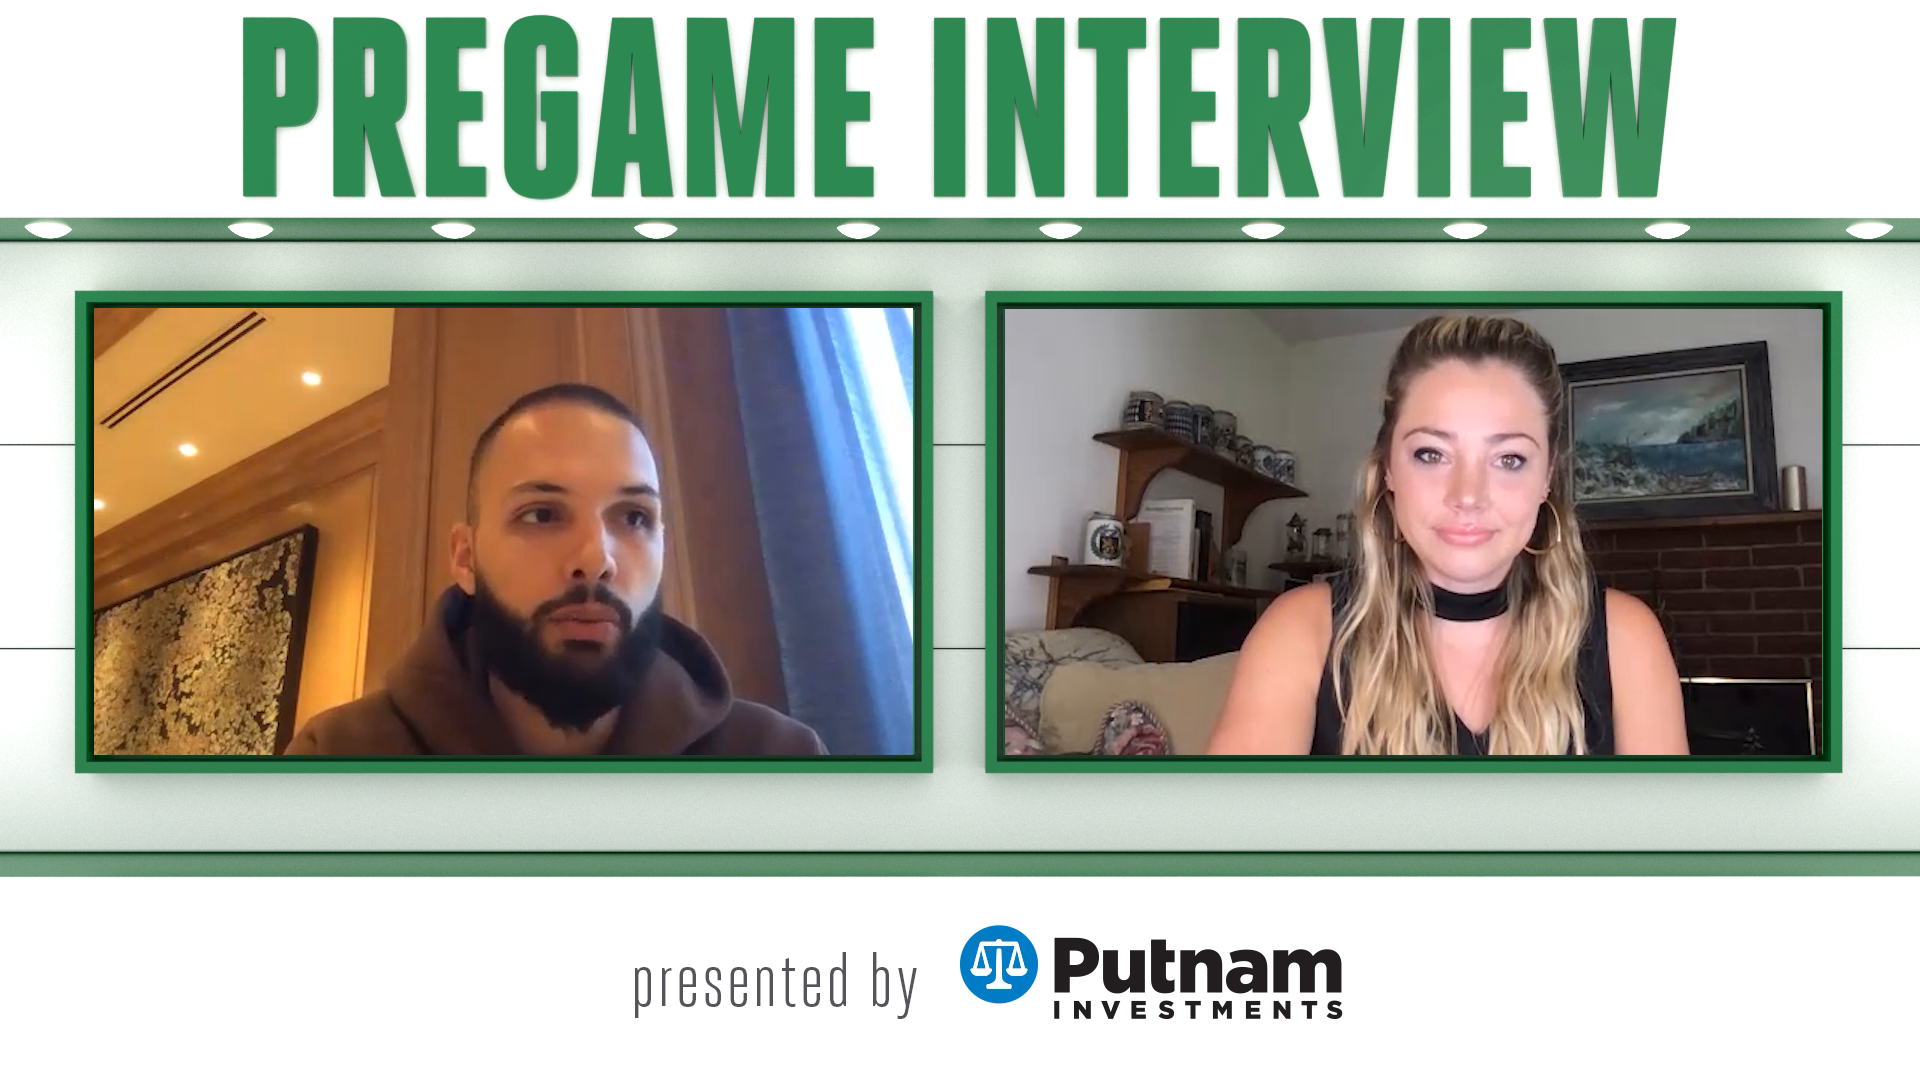 5/12 Putnam Pregame Interview: 'Finding Ourselves'